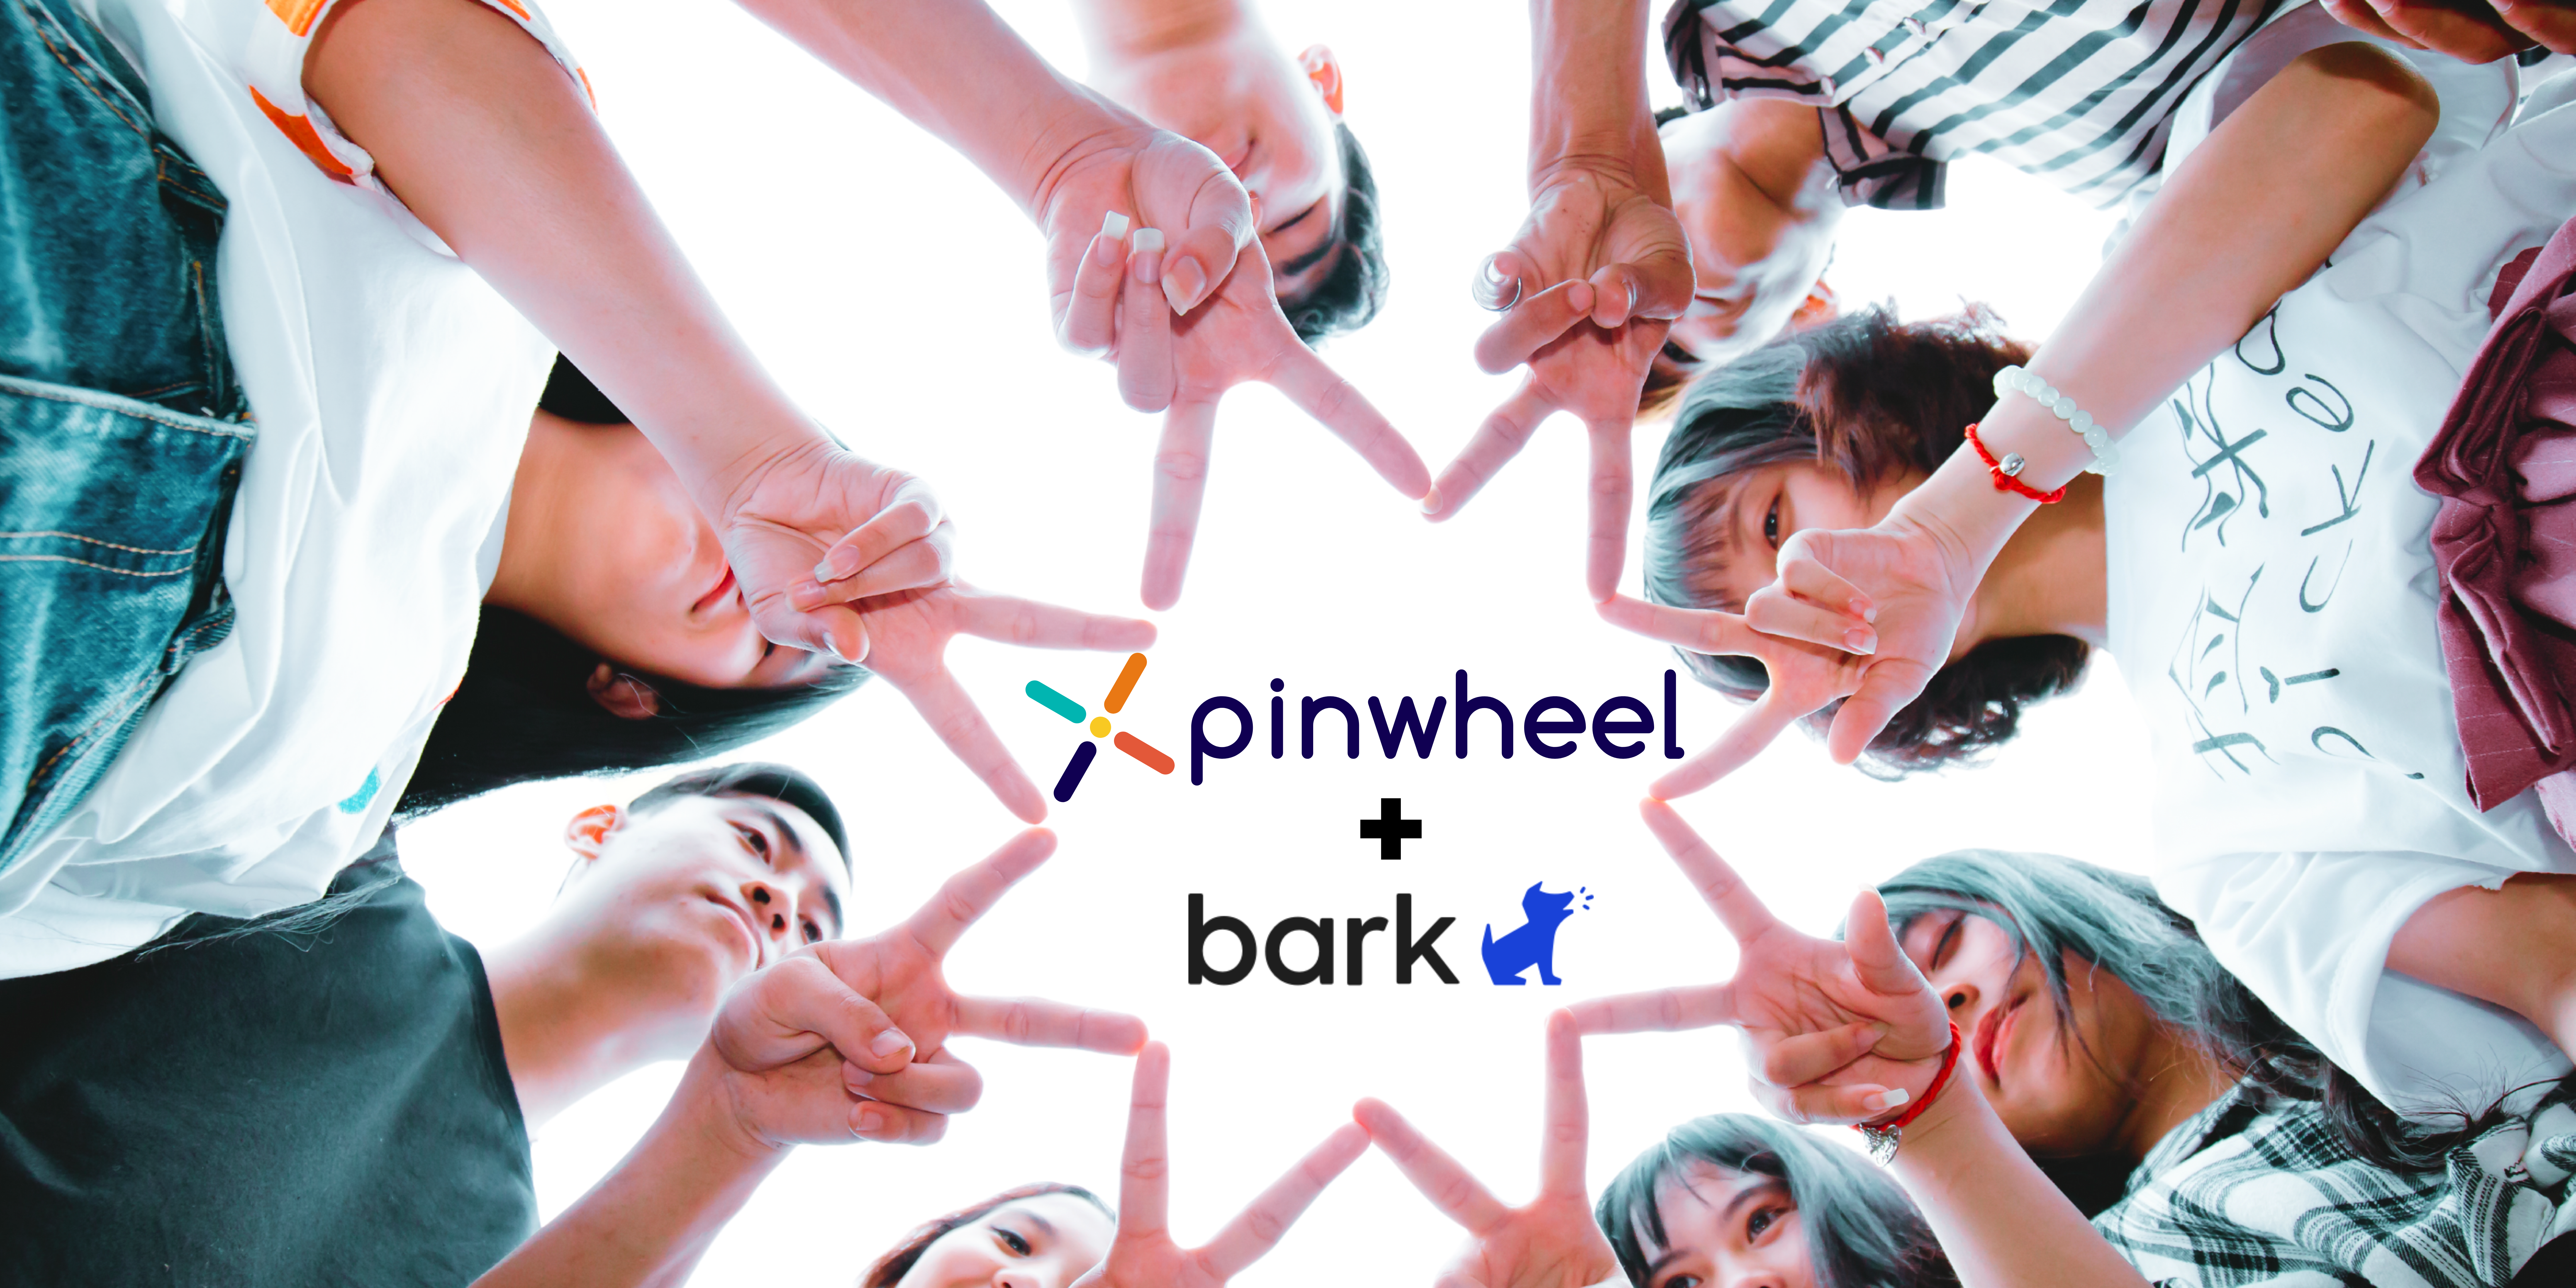 How Pinwheel and Bark together support the #LetParentsProtect campaign by Dr. Laura Berman PhD